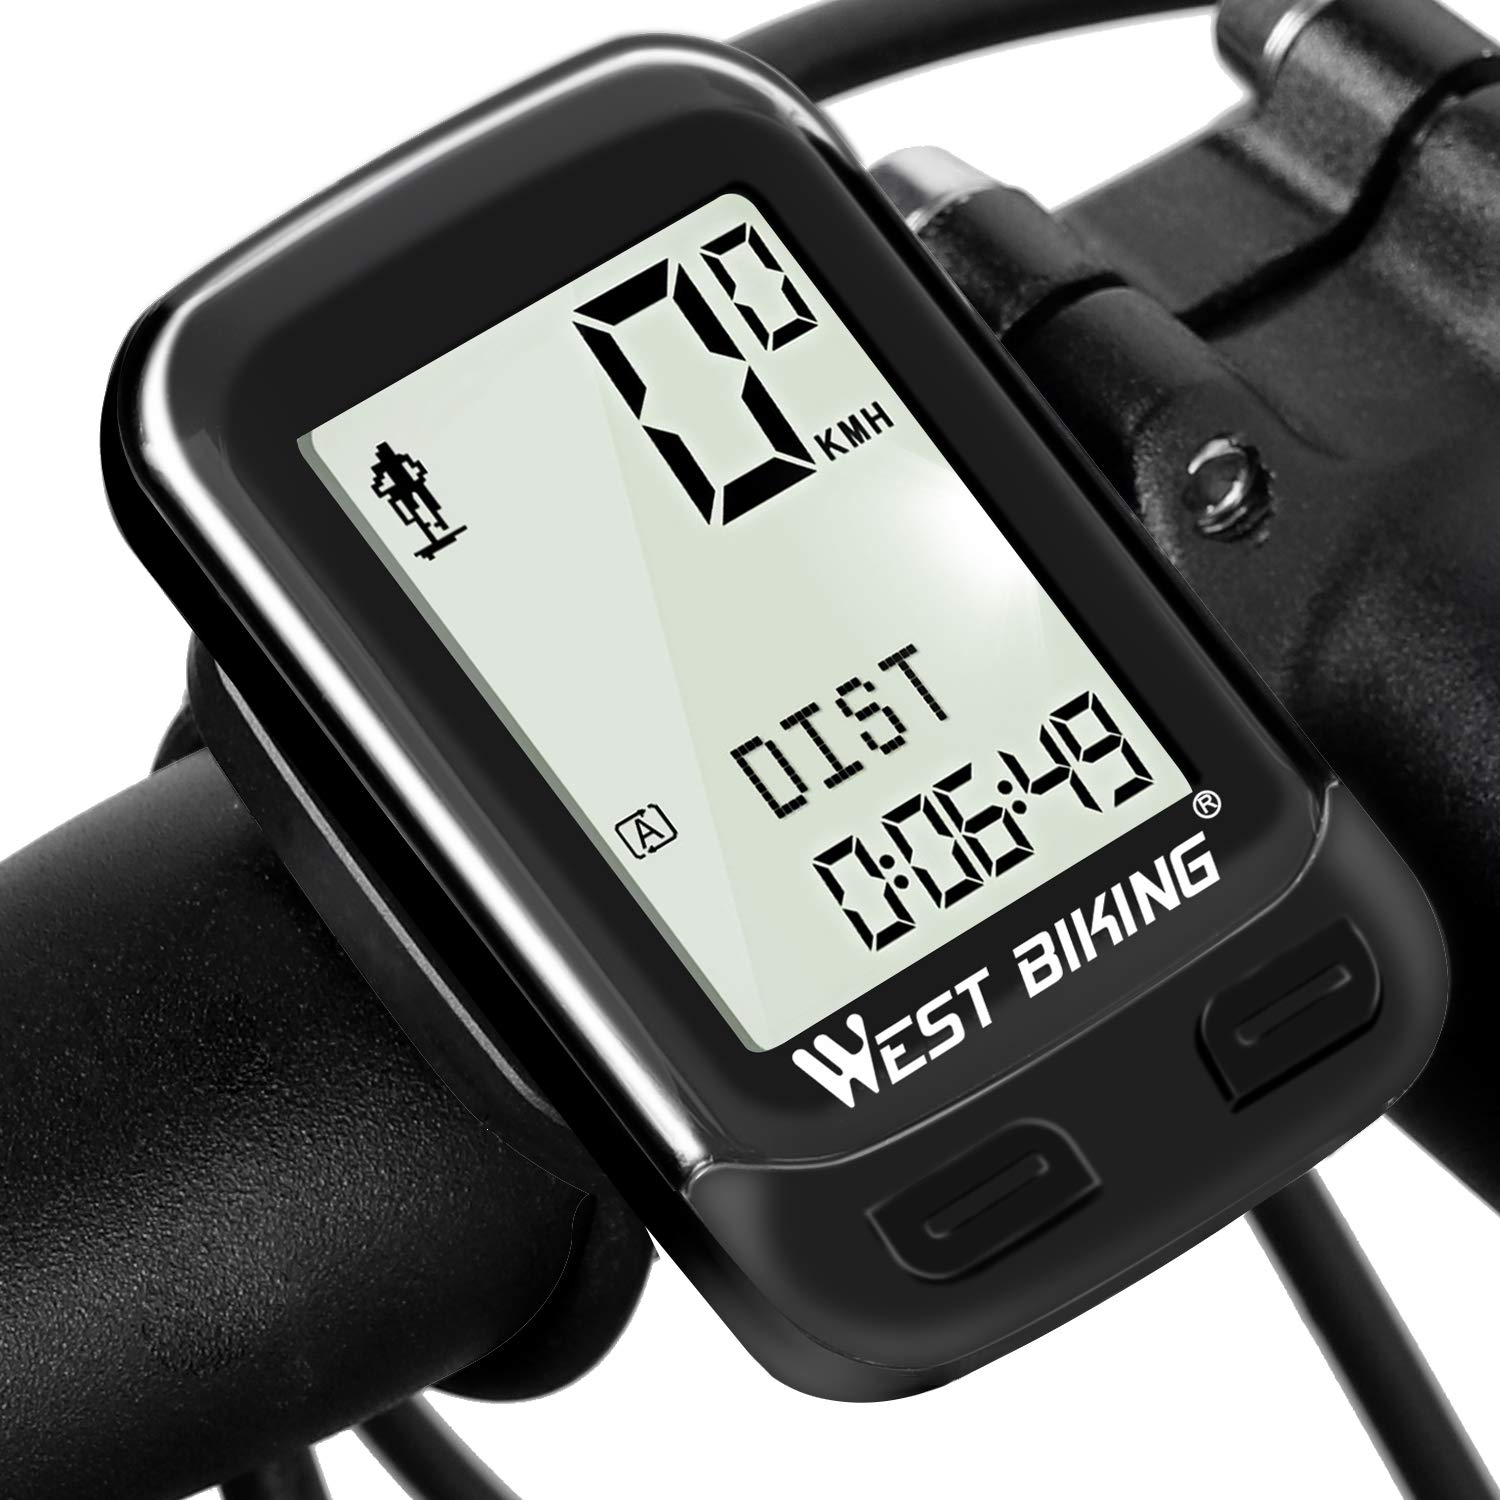 ICOCOPRO Bike Computer, Bicycle Speedometer and Odometer Wireless Waterproof Cycle Computer with Automatic Wake-up Multi-Function on LCD Backlight & 5 Language Display for Cycling Accessories